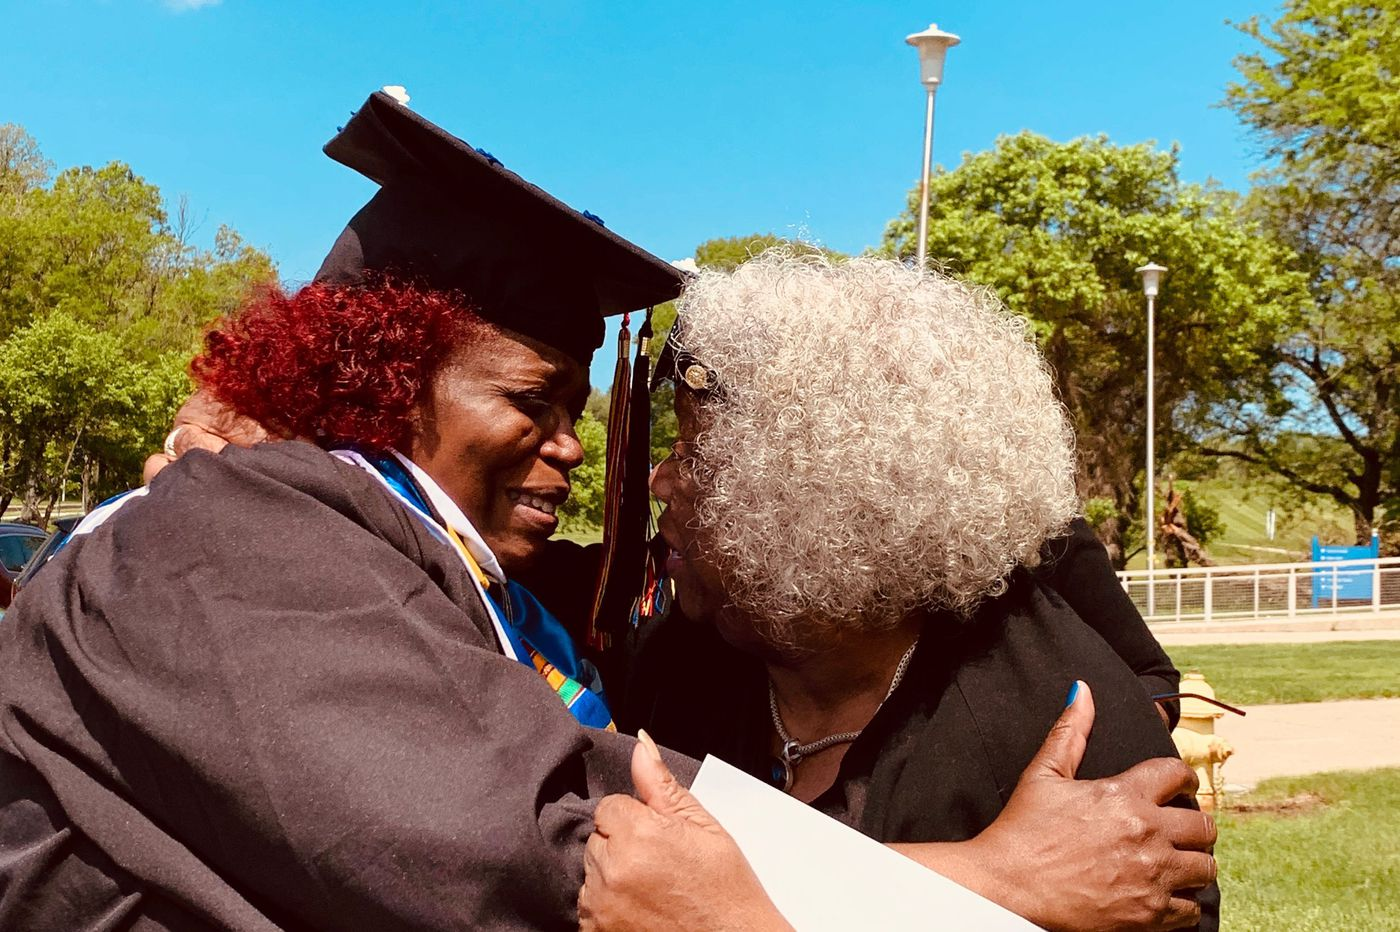 This 60-year-old Philly grandmother lived in the dorms at Cheyney. Now she's the Class of 2019 valedictorian.